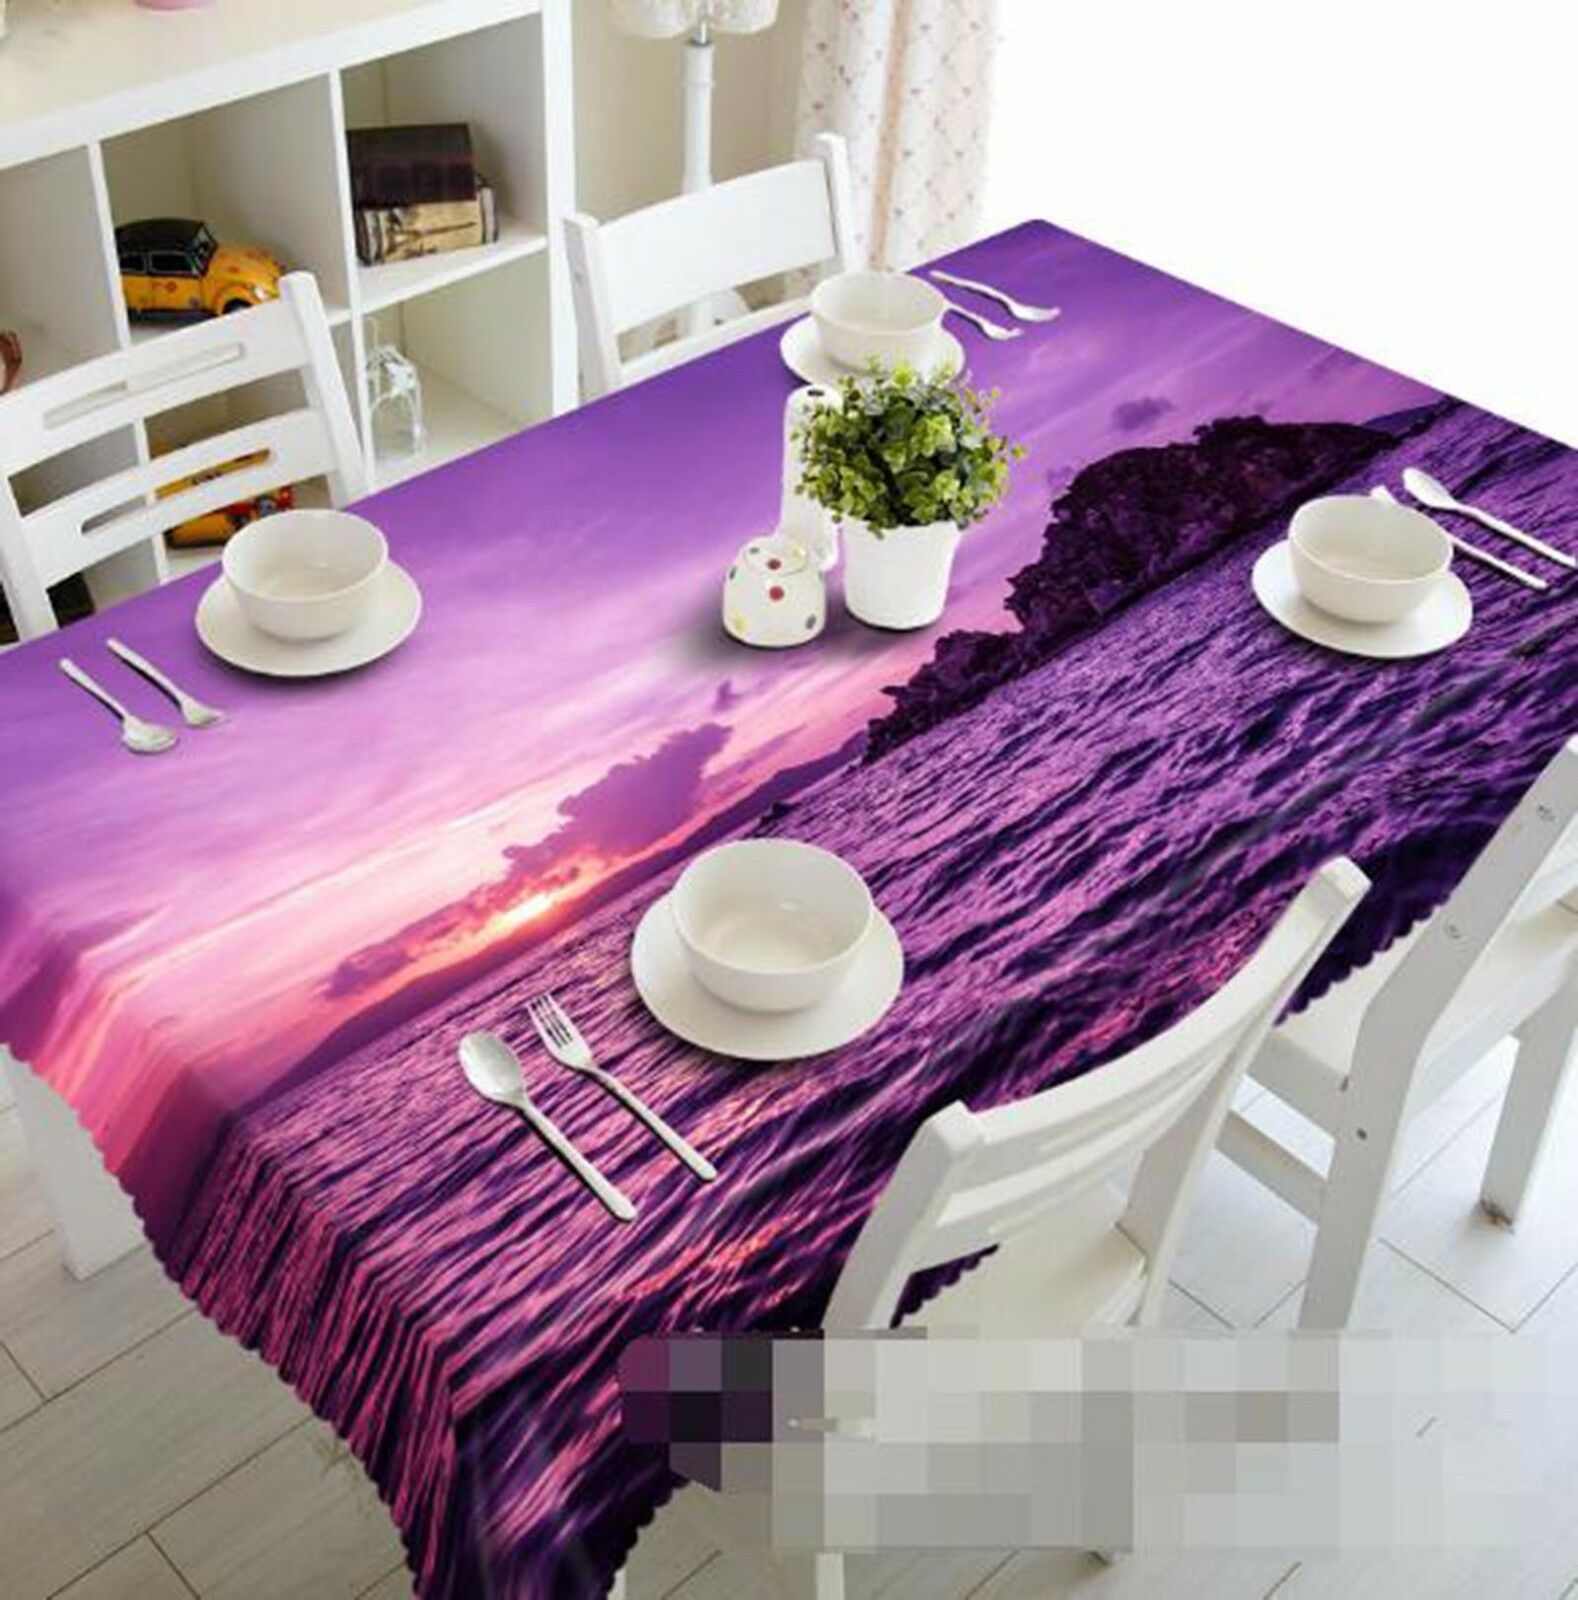 3D River 446 Tablecloth Table Cover Cloth Birthday Party AJ WALLPAPER UK Lemon